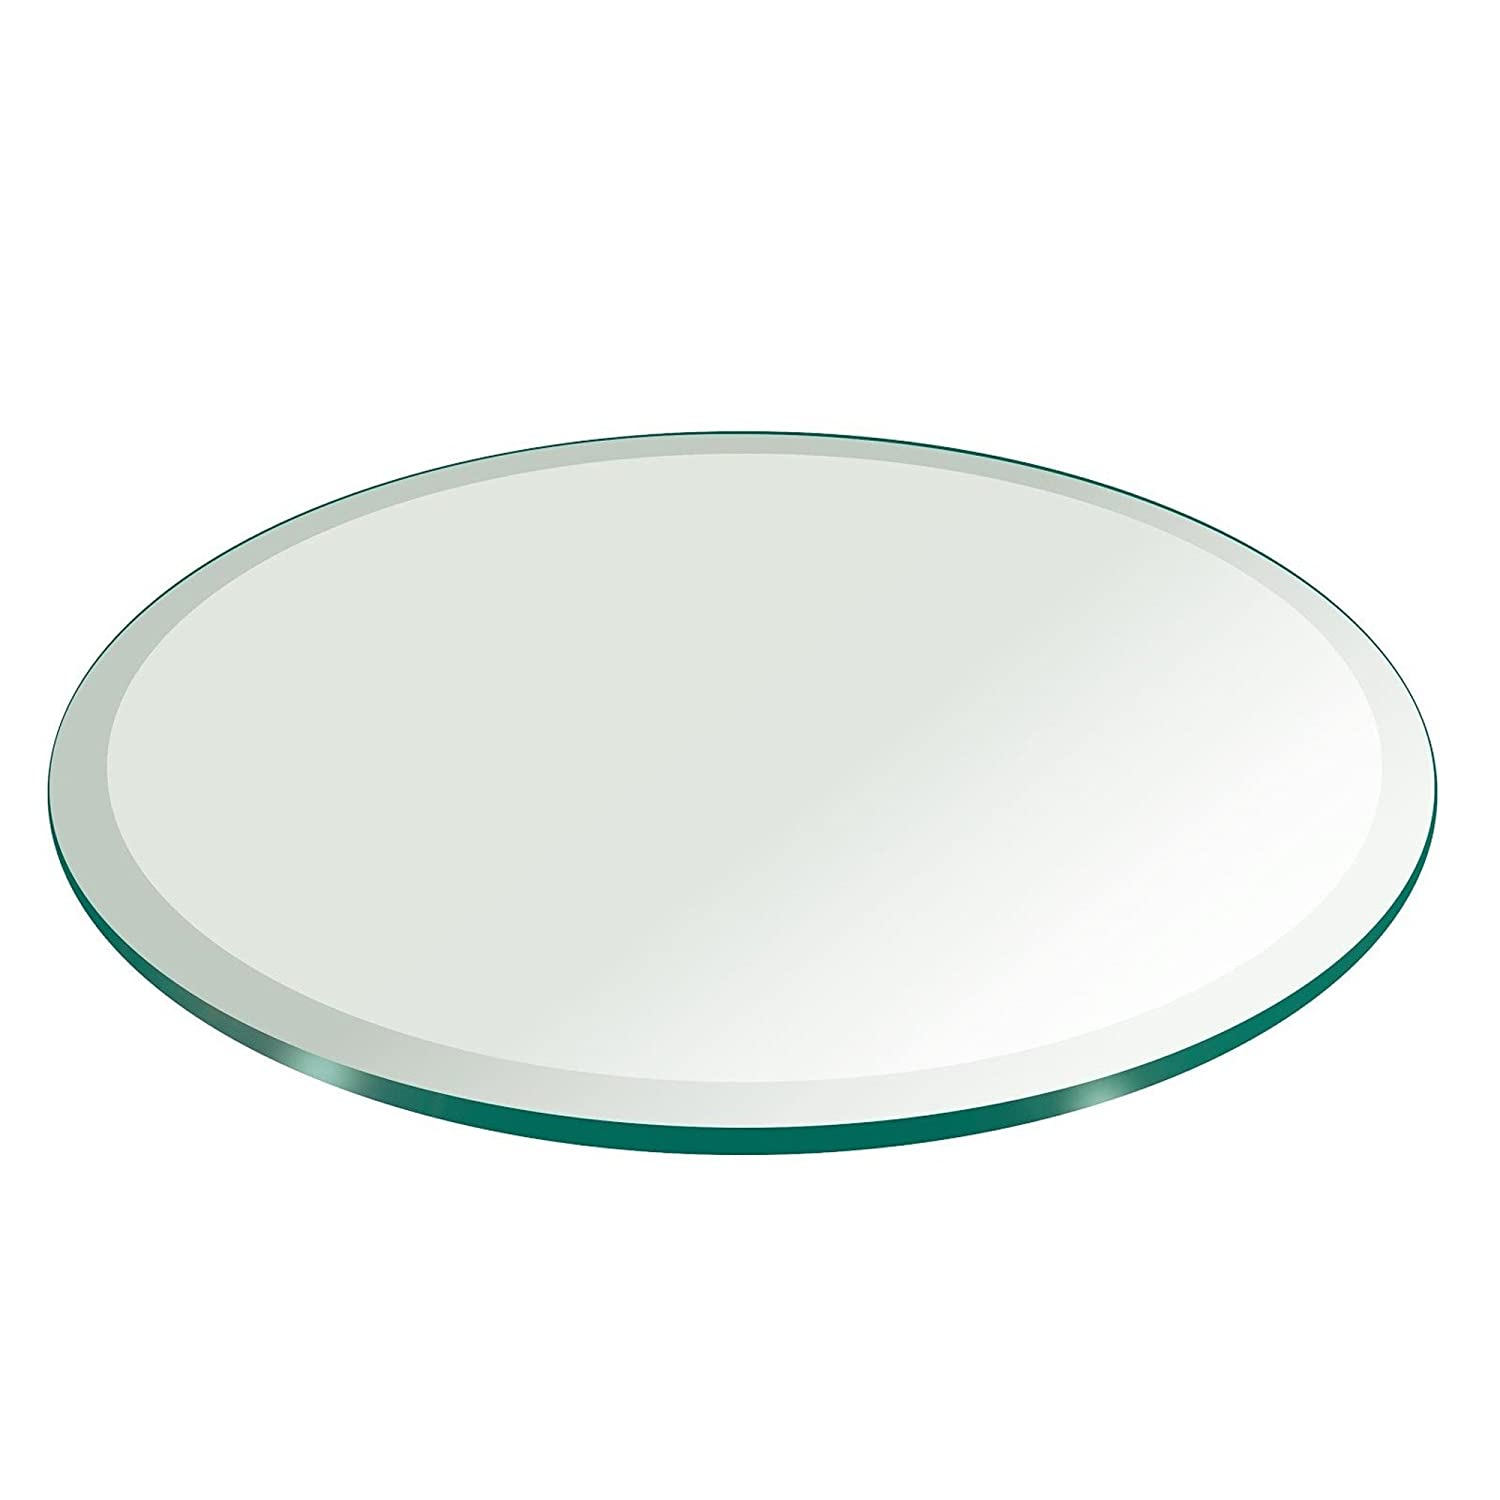 36 Inch Round Glass Table Top 1/2 Thick Tempered Beveled Edge by Fab Glass and Mirror 36RT12THBEAN